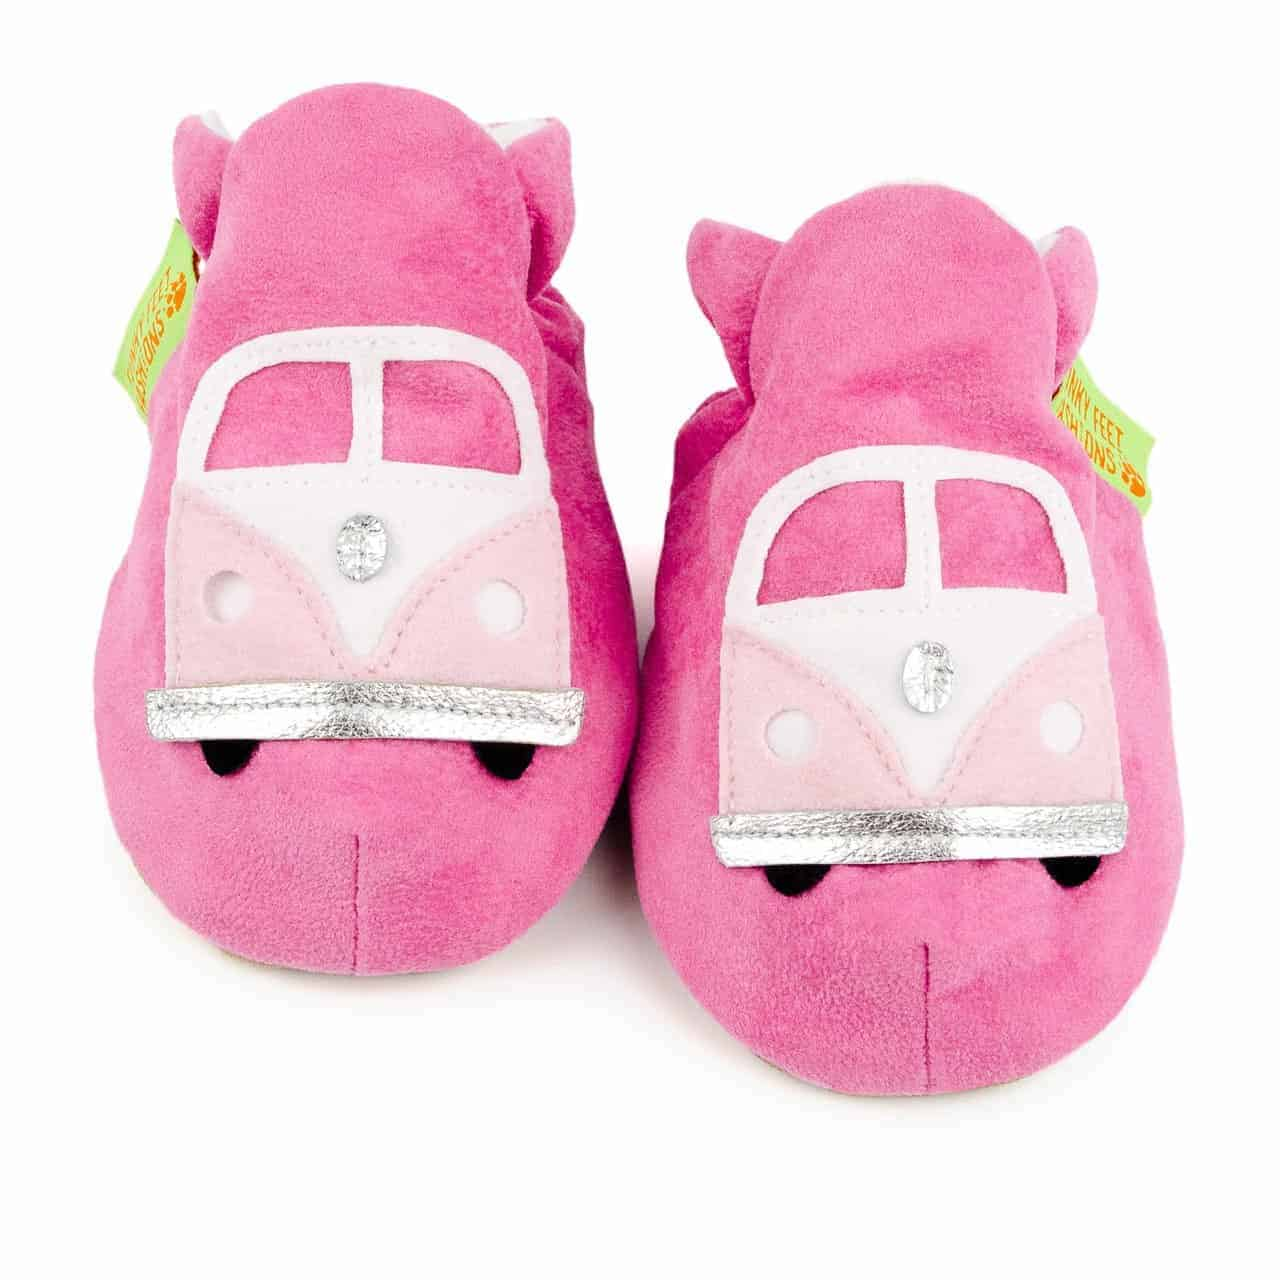 c9fb3d0513 Campervan Soft Baby Shoes – Children s Slippers – Pink - Funky Feet ...